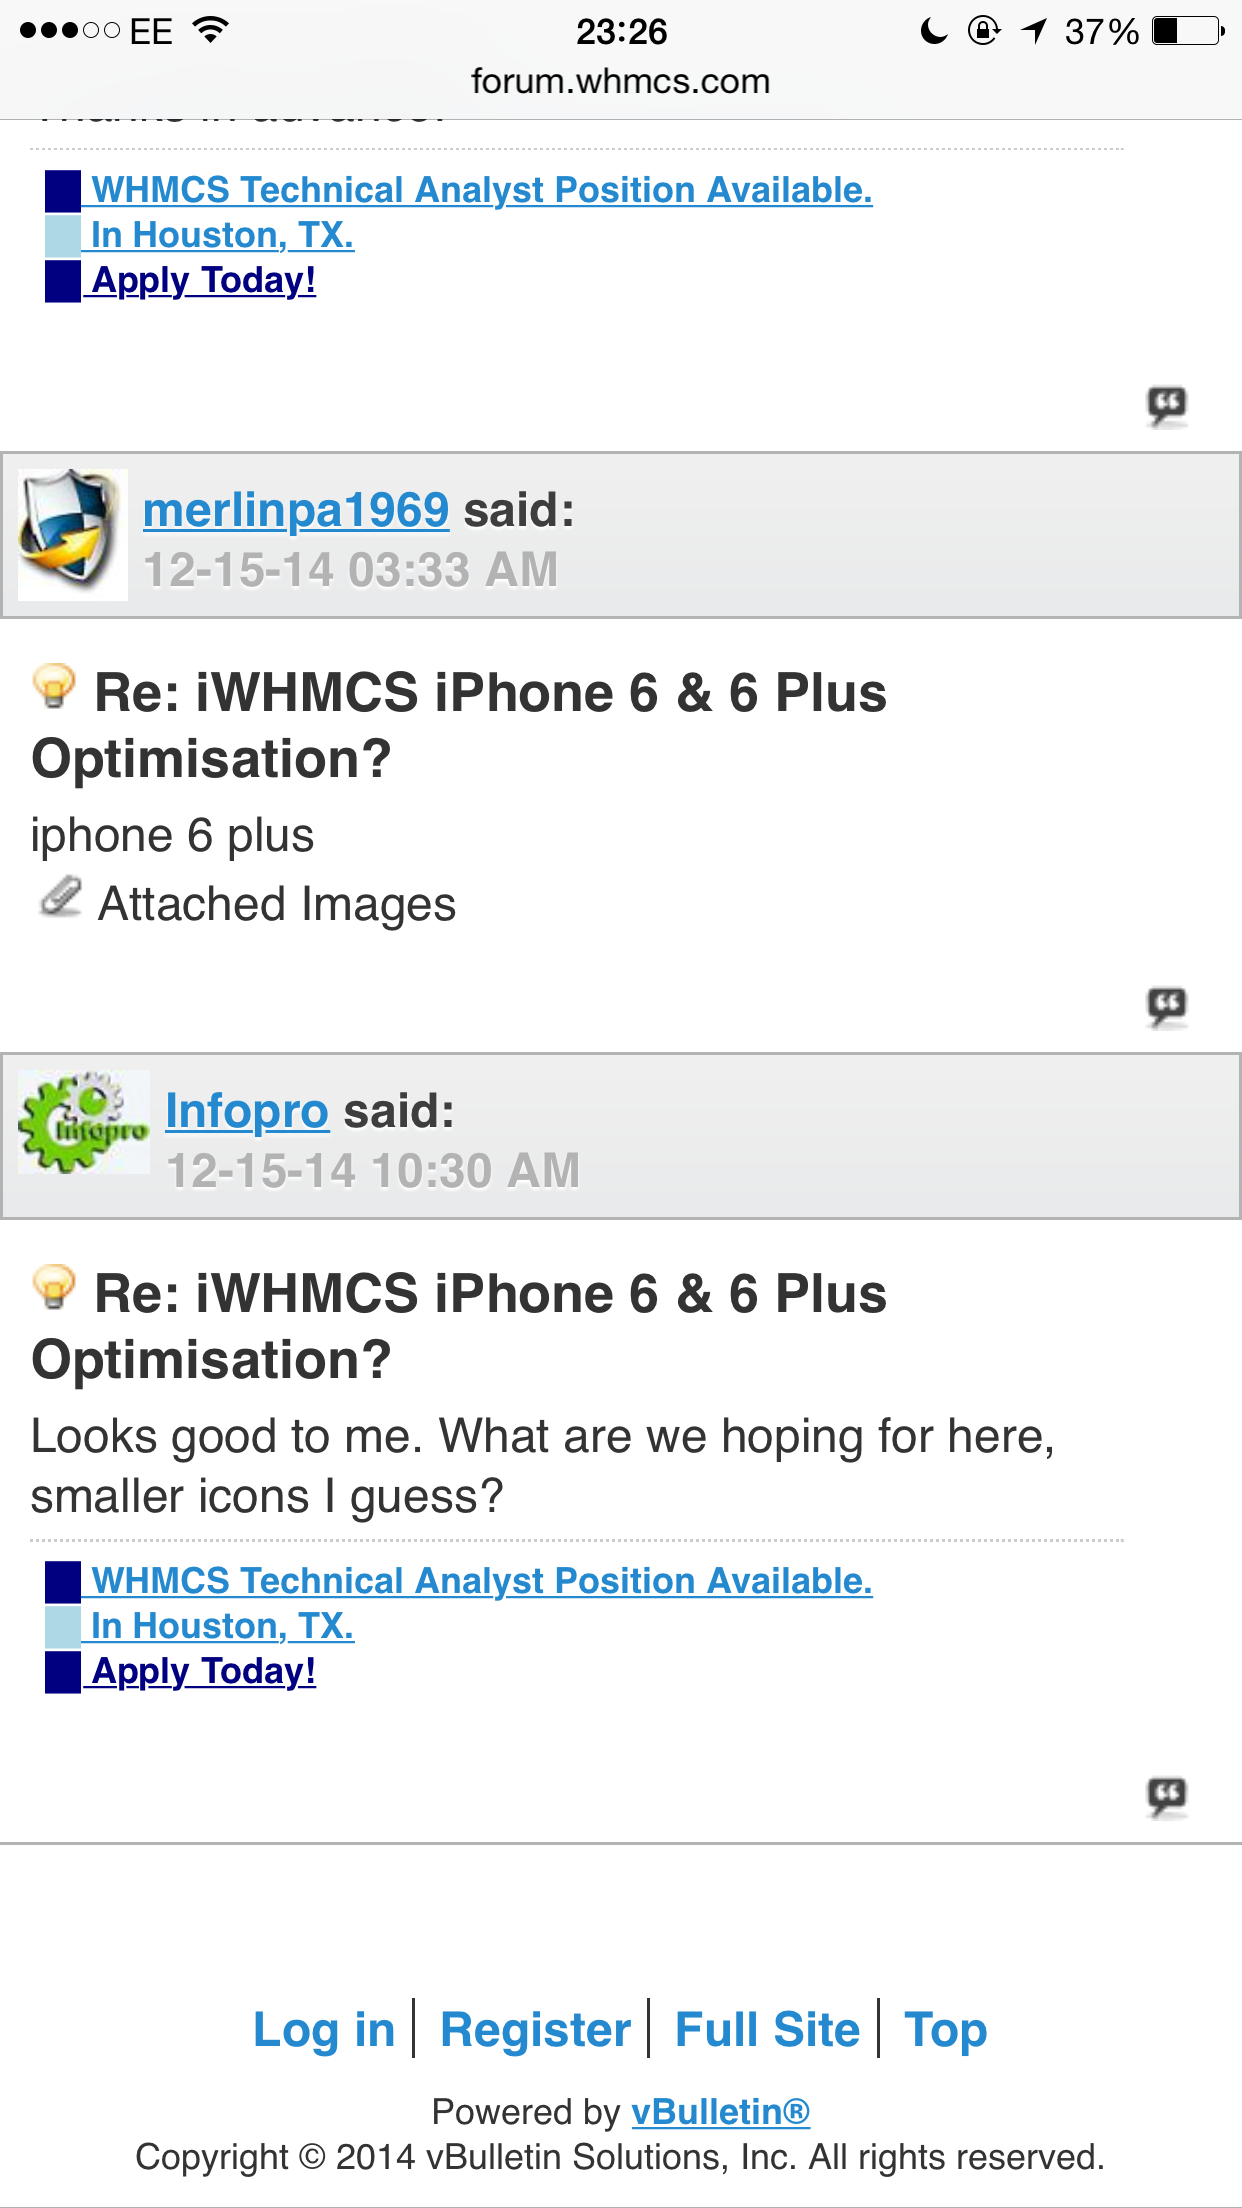 iWHMCS iPhone 6 & 6 Plus Optimisation? - Using WHMCS - WHMCS